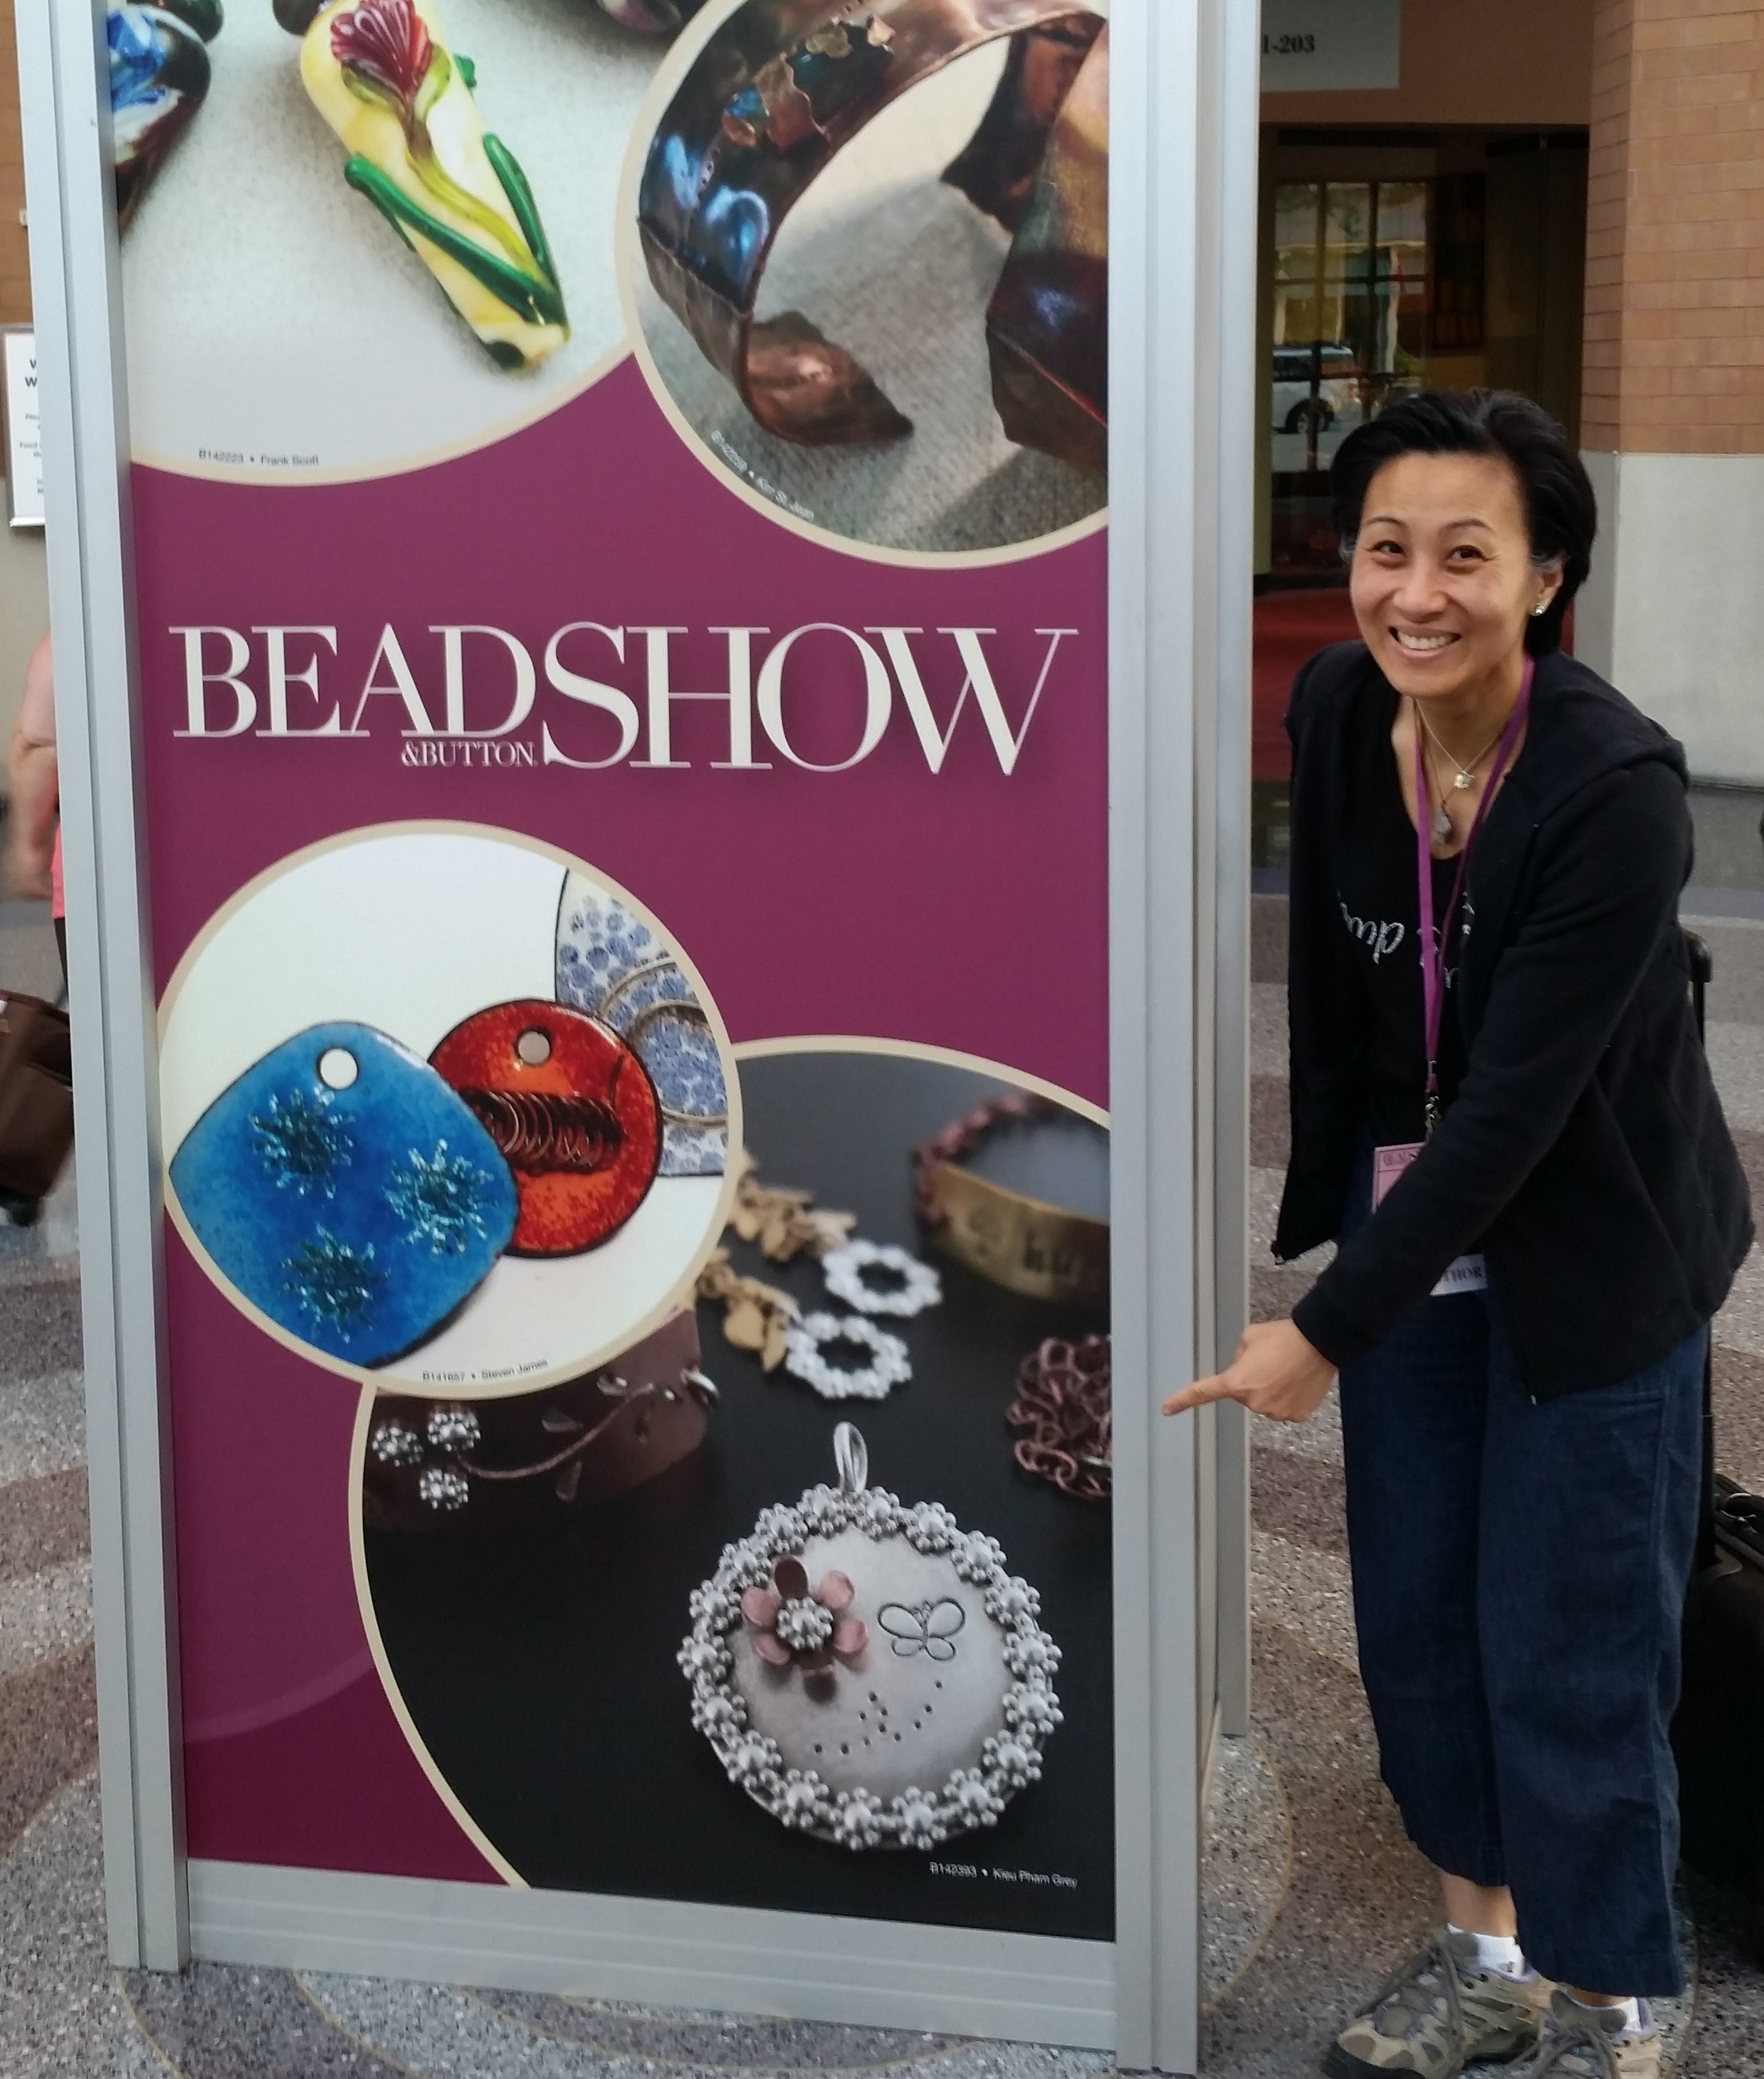 Becoming a Bead & Button Instructor